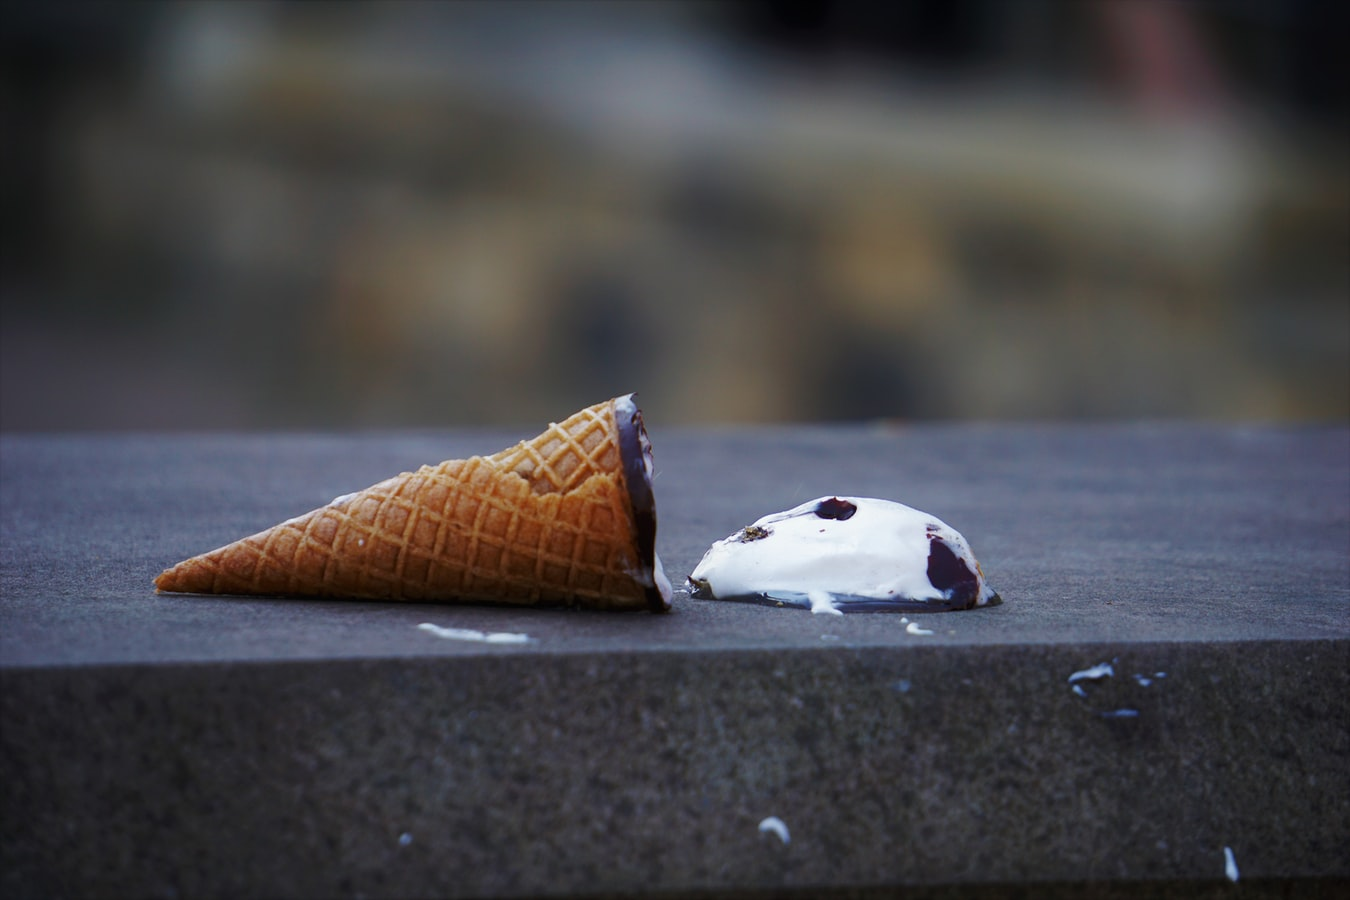 Ice cream that's fallen out of its cone